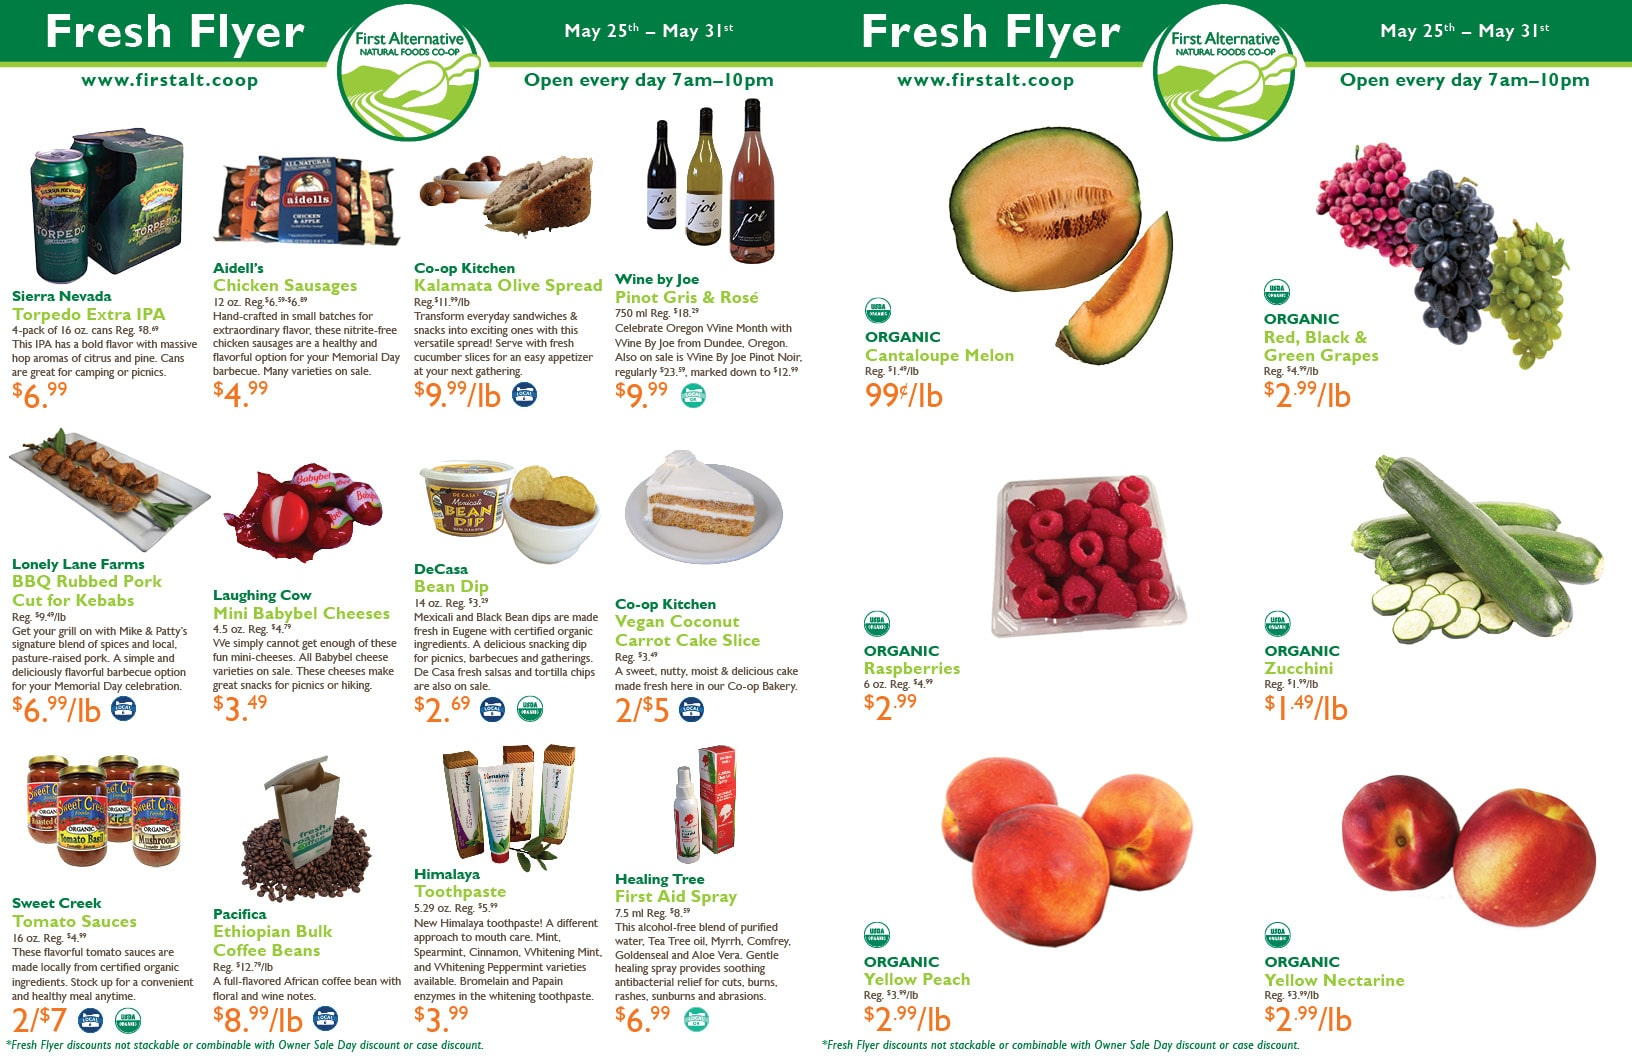 First Alternative Co-op Fresh Flyer May 25-31